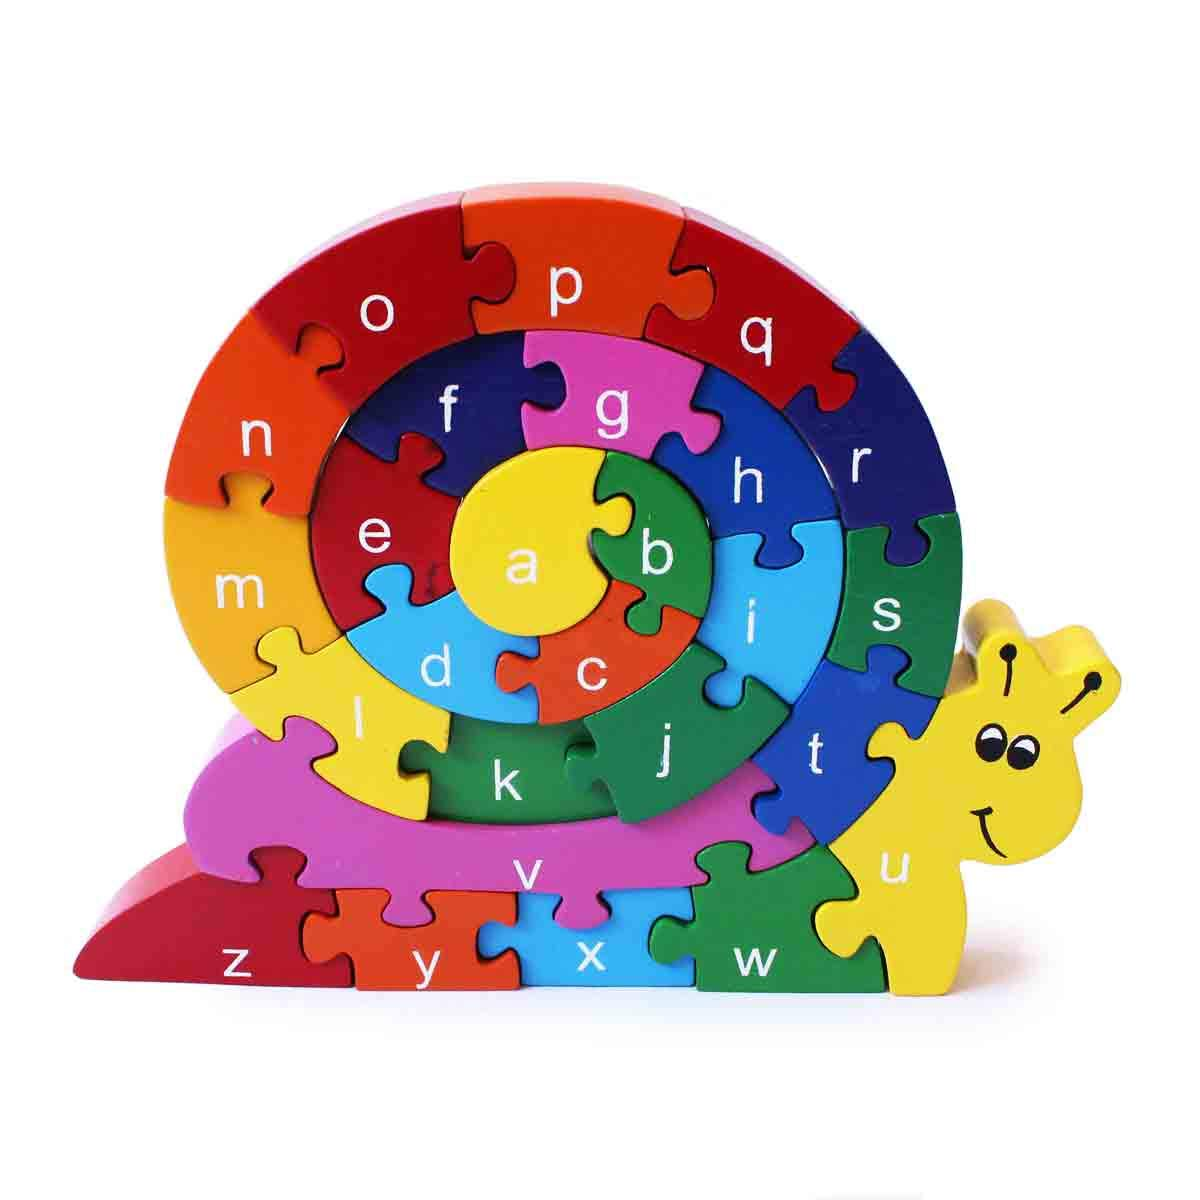 Shumee Wooden Snail Jigsaw Puzzle for Toddlers, Kids, Preschool Age Children   Educational Toy   100% Safe, Natural & Eco-Friendly   3 Years and up